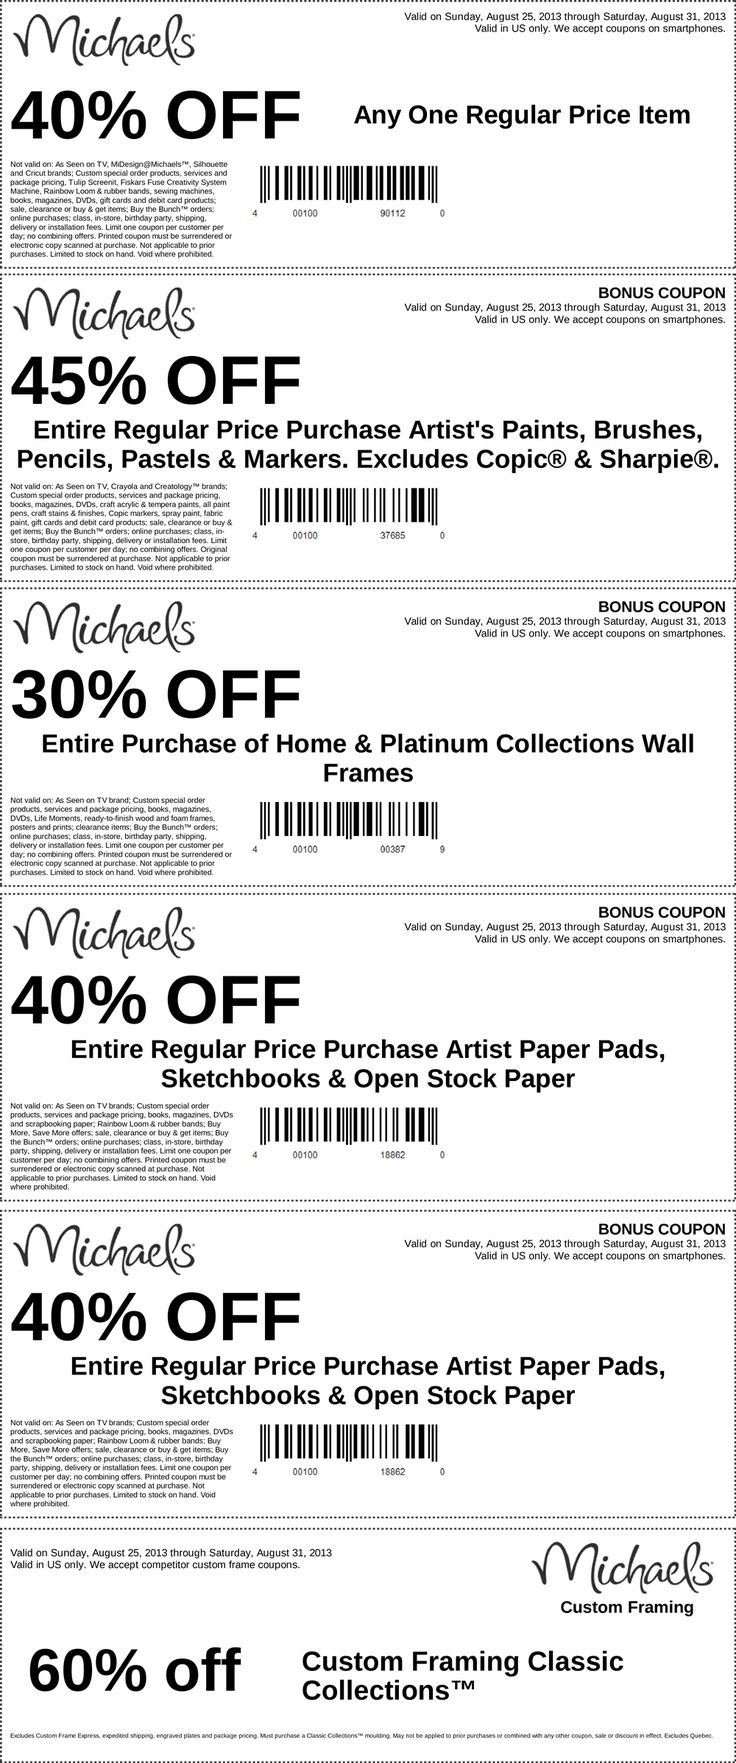 Pinned August 25th: 40% off a single item and more at Michaels #coupon via The Coupons App